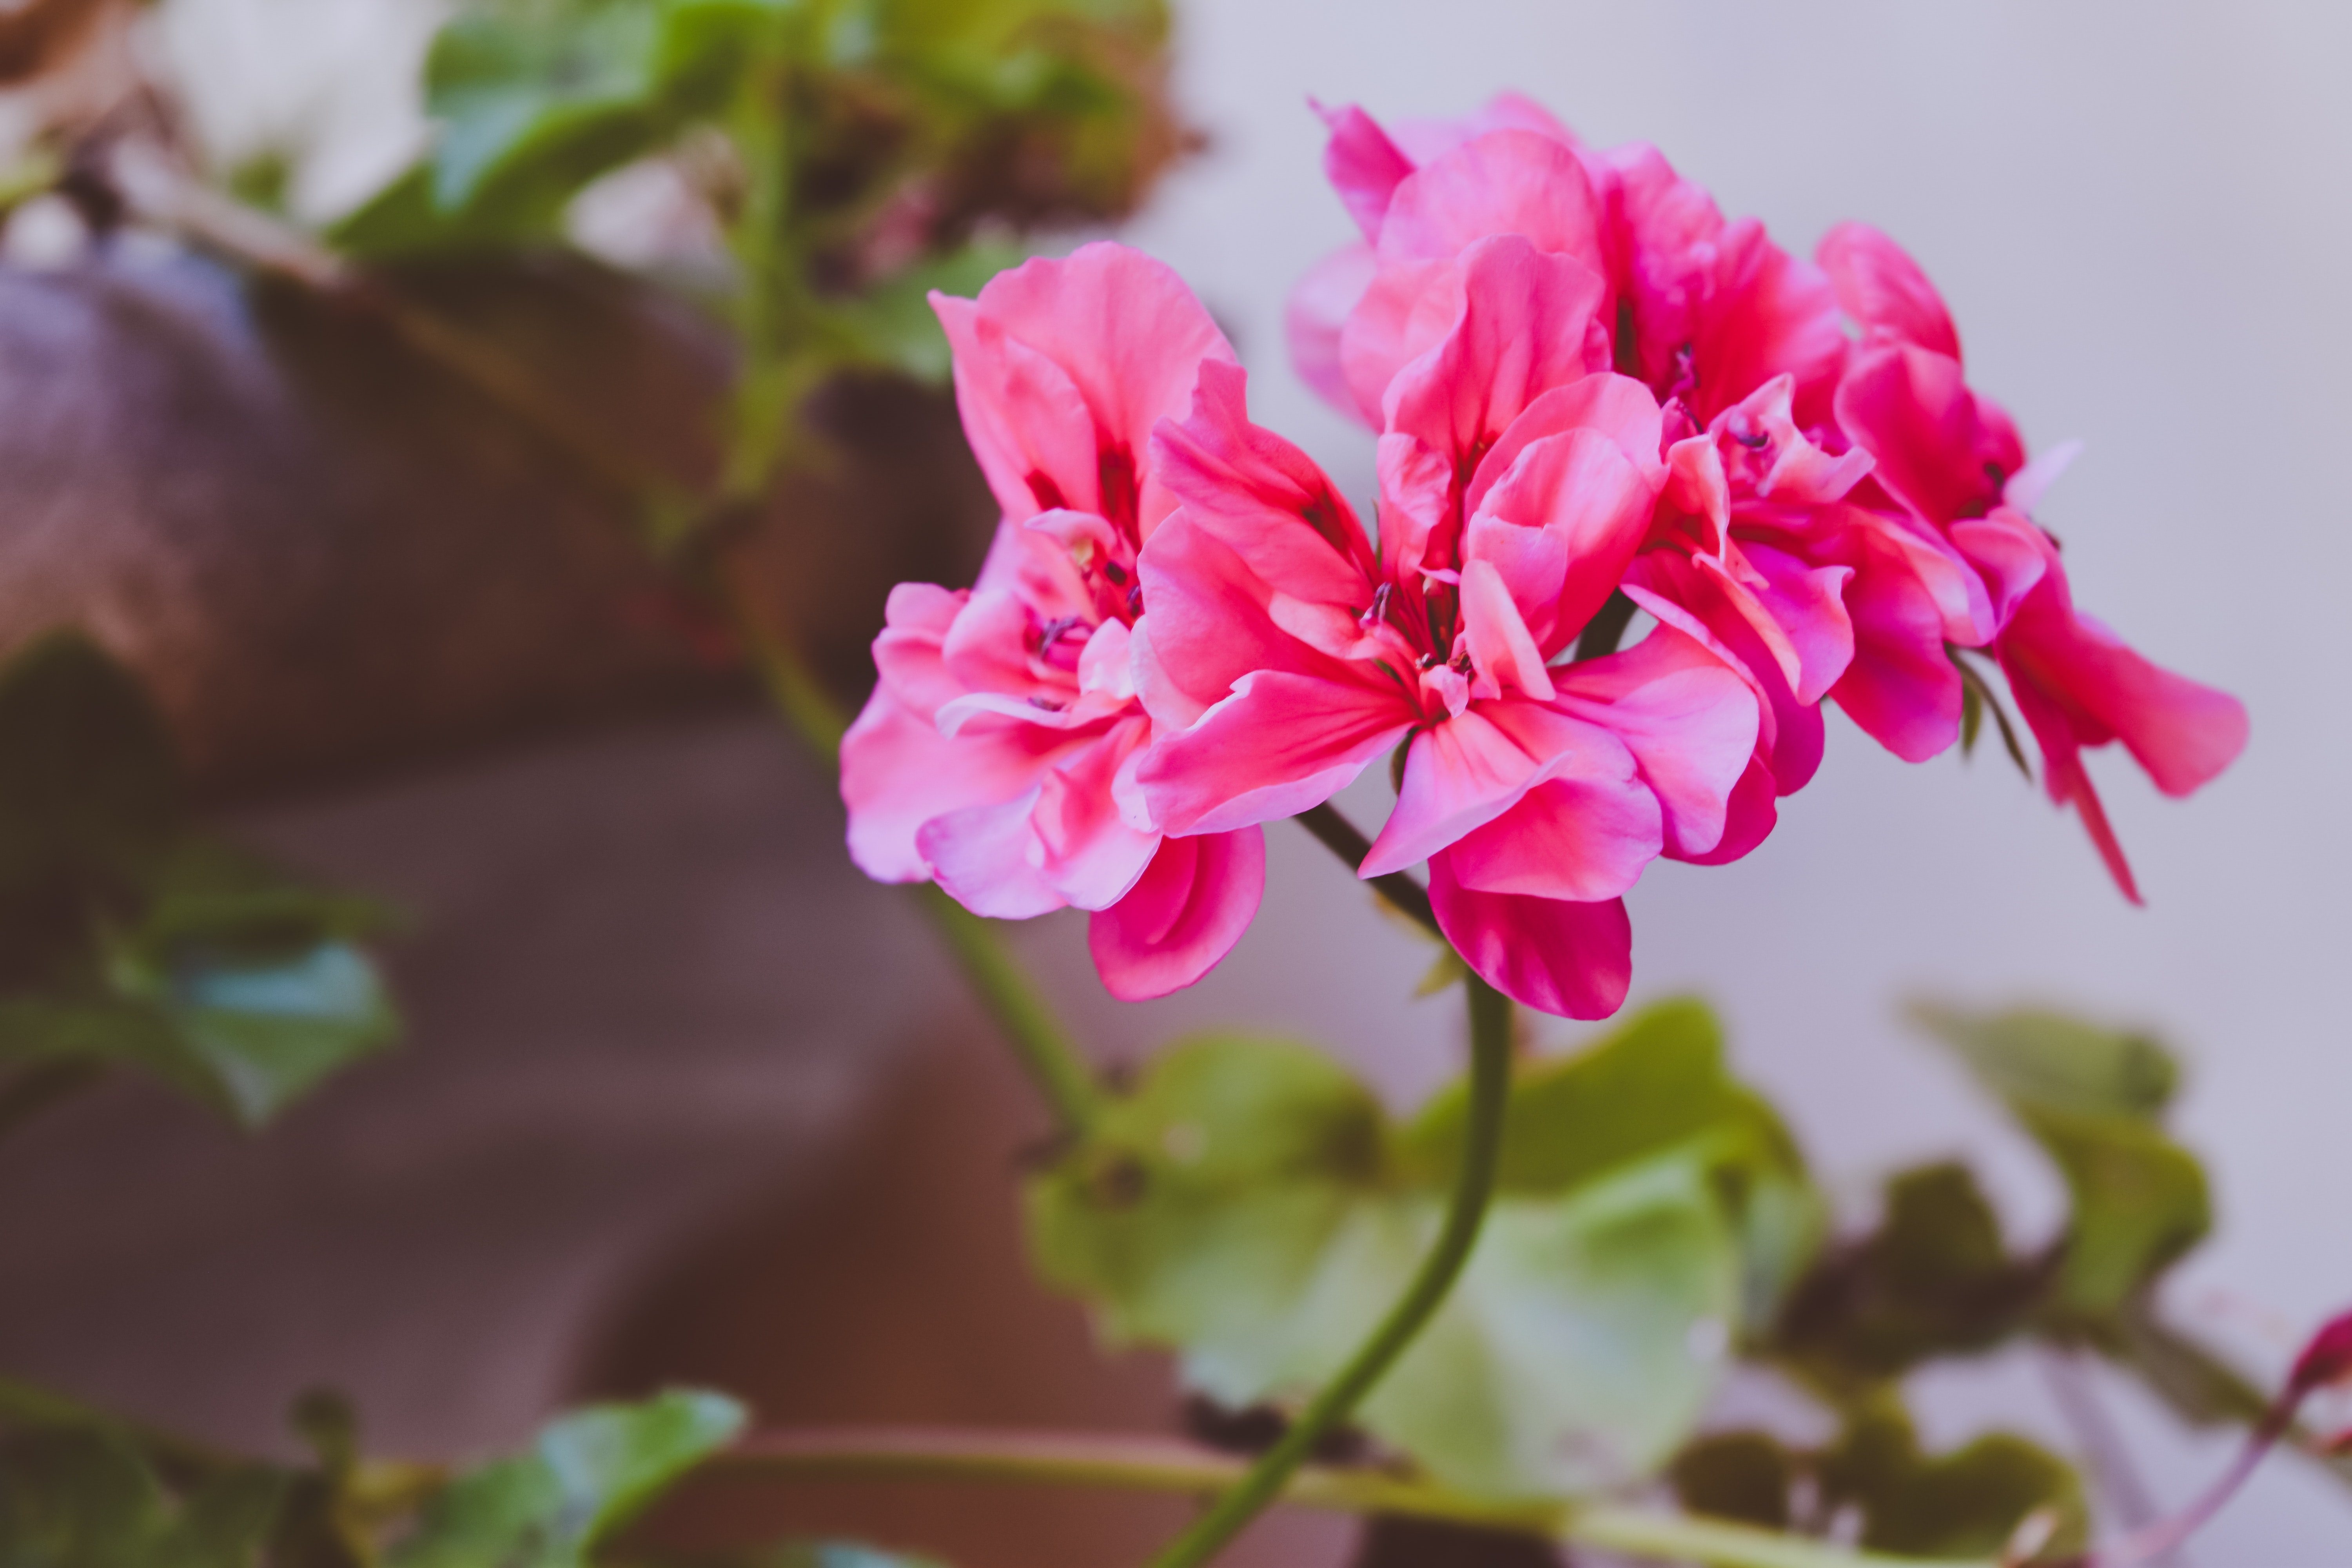 Pink clustered flower photo